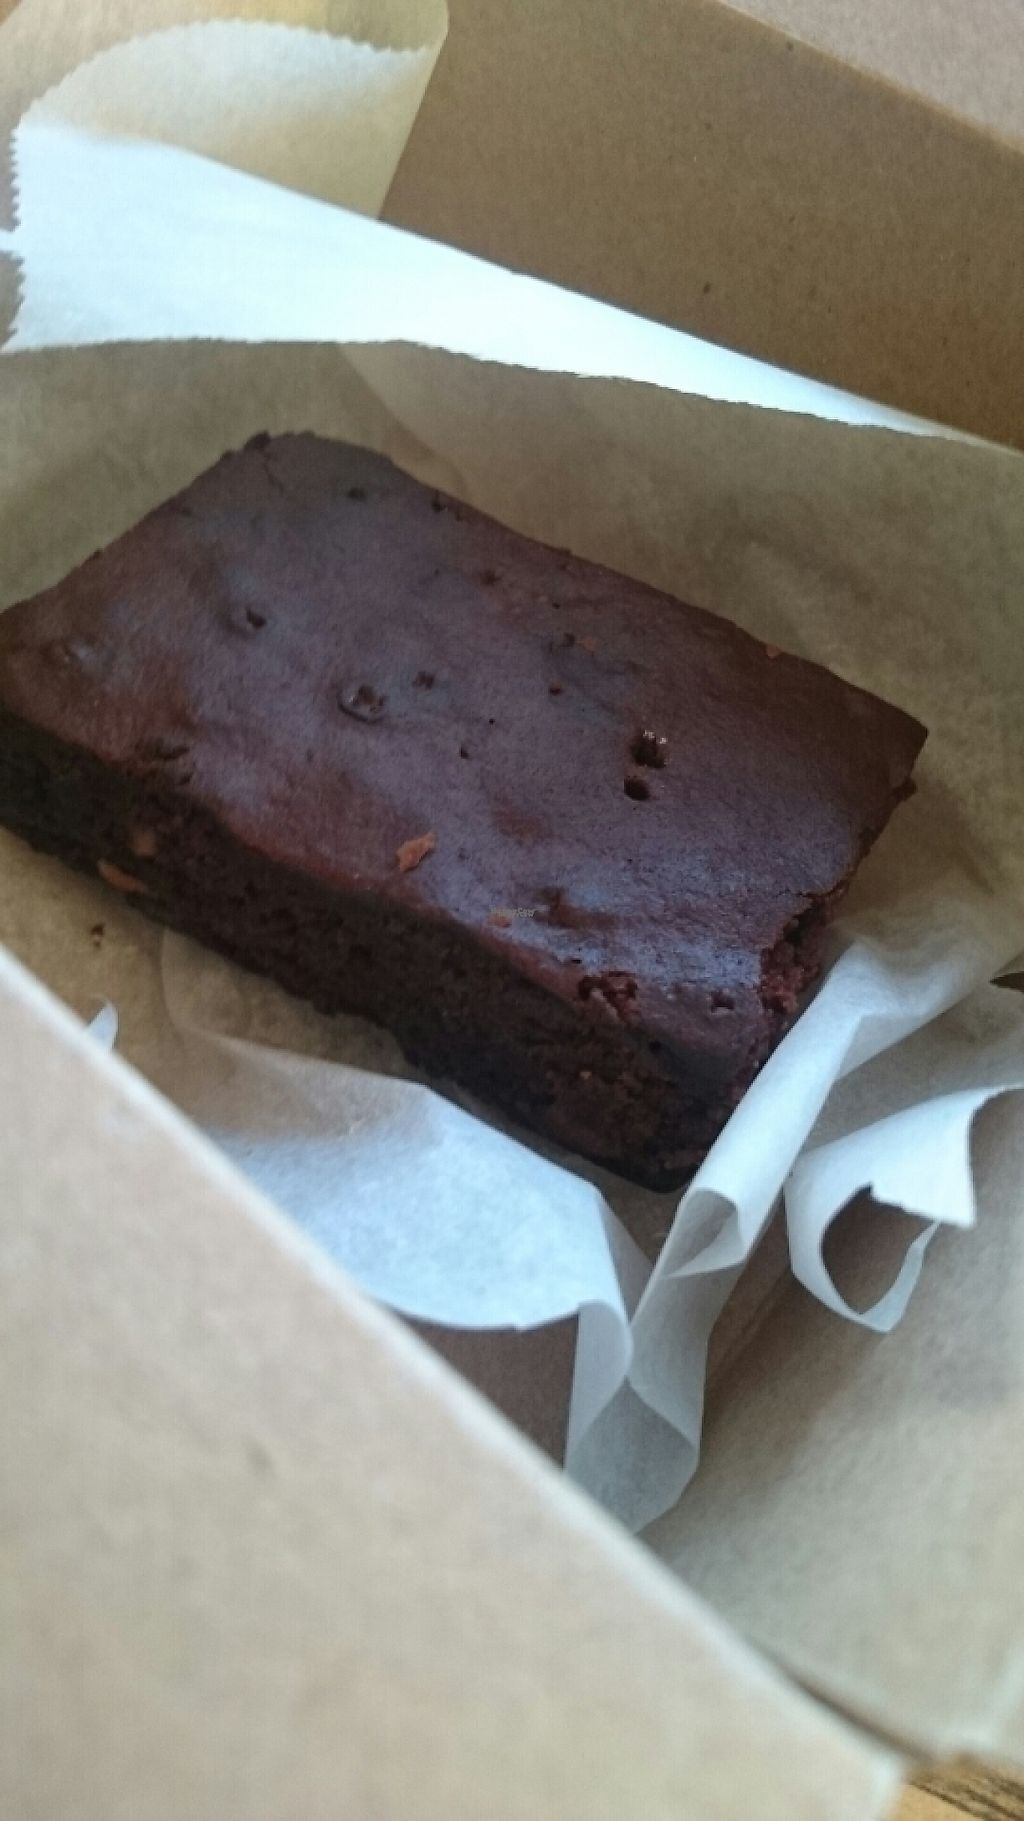 "Photo of CLOSED: Sugar and Spice  by <a href=""/members/profile/schlechteIdee"">schlechteIdee</a> <br/>vegan brownie in paper box  <br/> March 15, 2017  - <a href='/contact/abuse/image/56935/236782'>Report</a>"